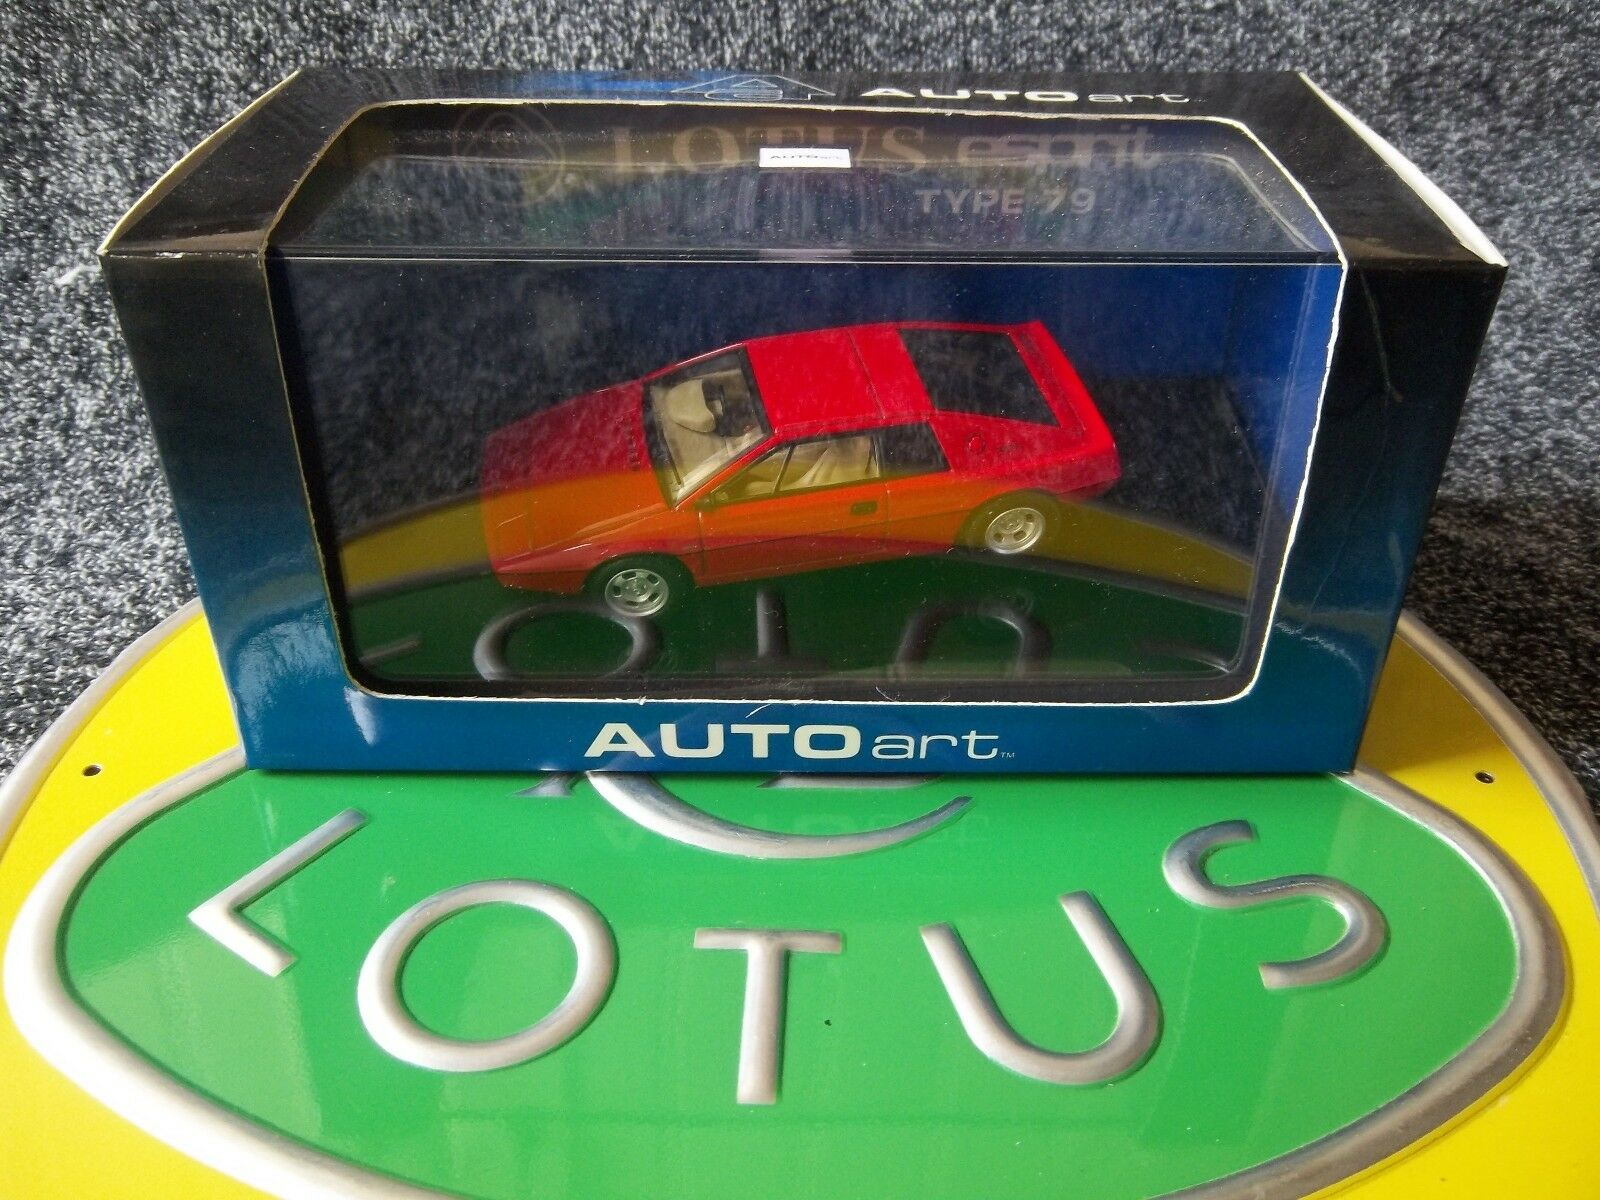 Autoart Lotus Esprit Type 79 Red 1 43 Mint Boxed 55313 Hethel F1 Andretti